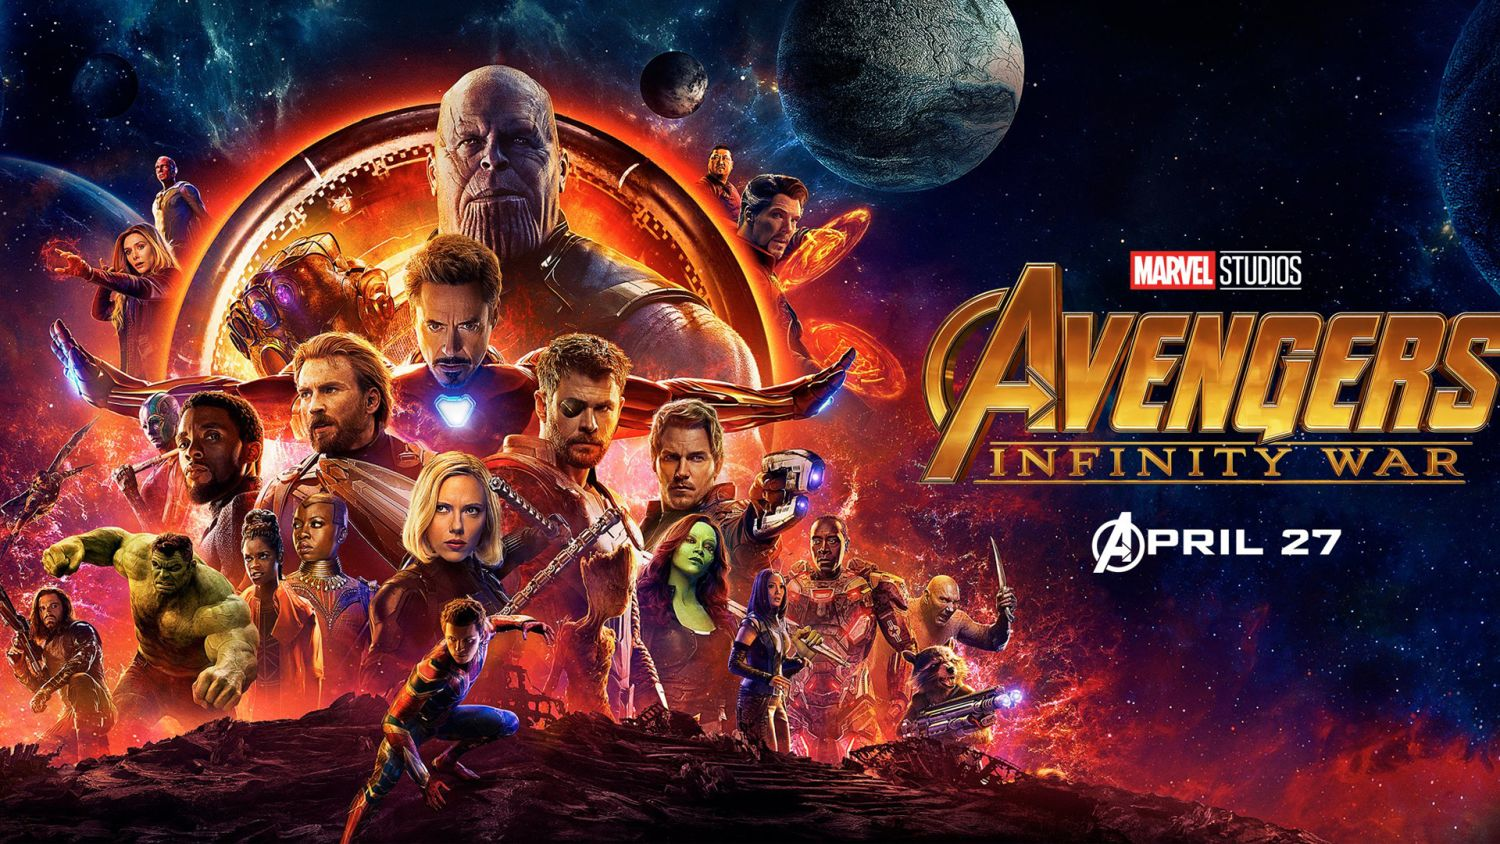 avengers infinity war avengers 3 online free download hd live